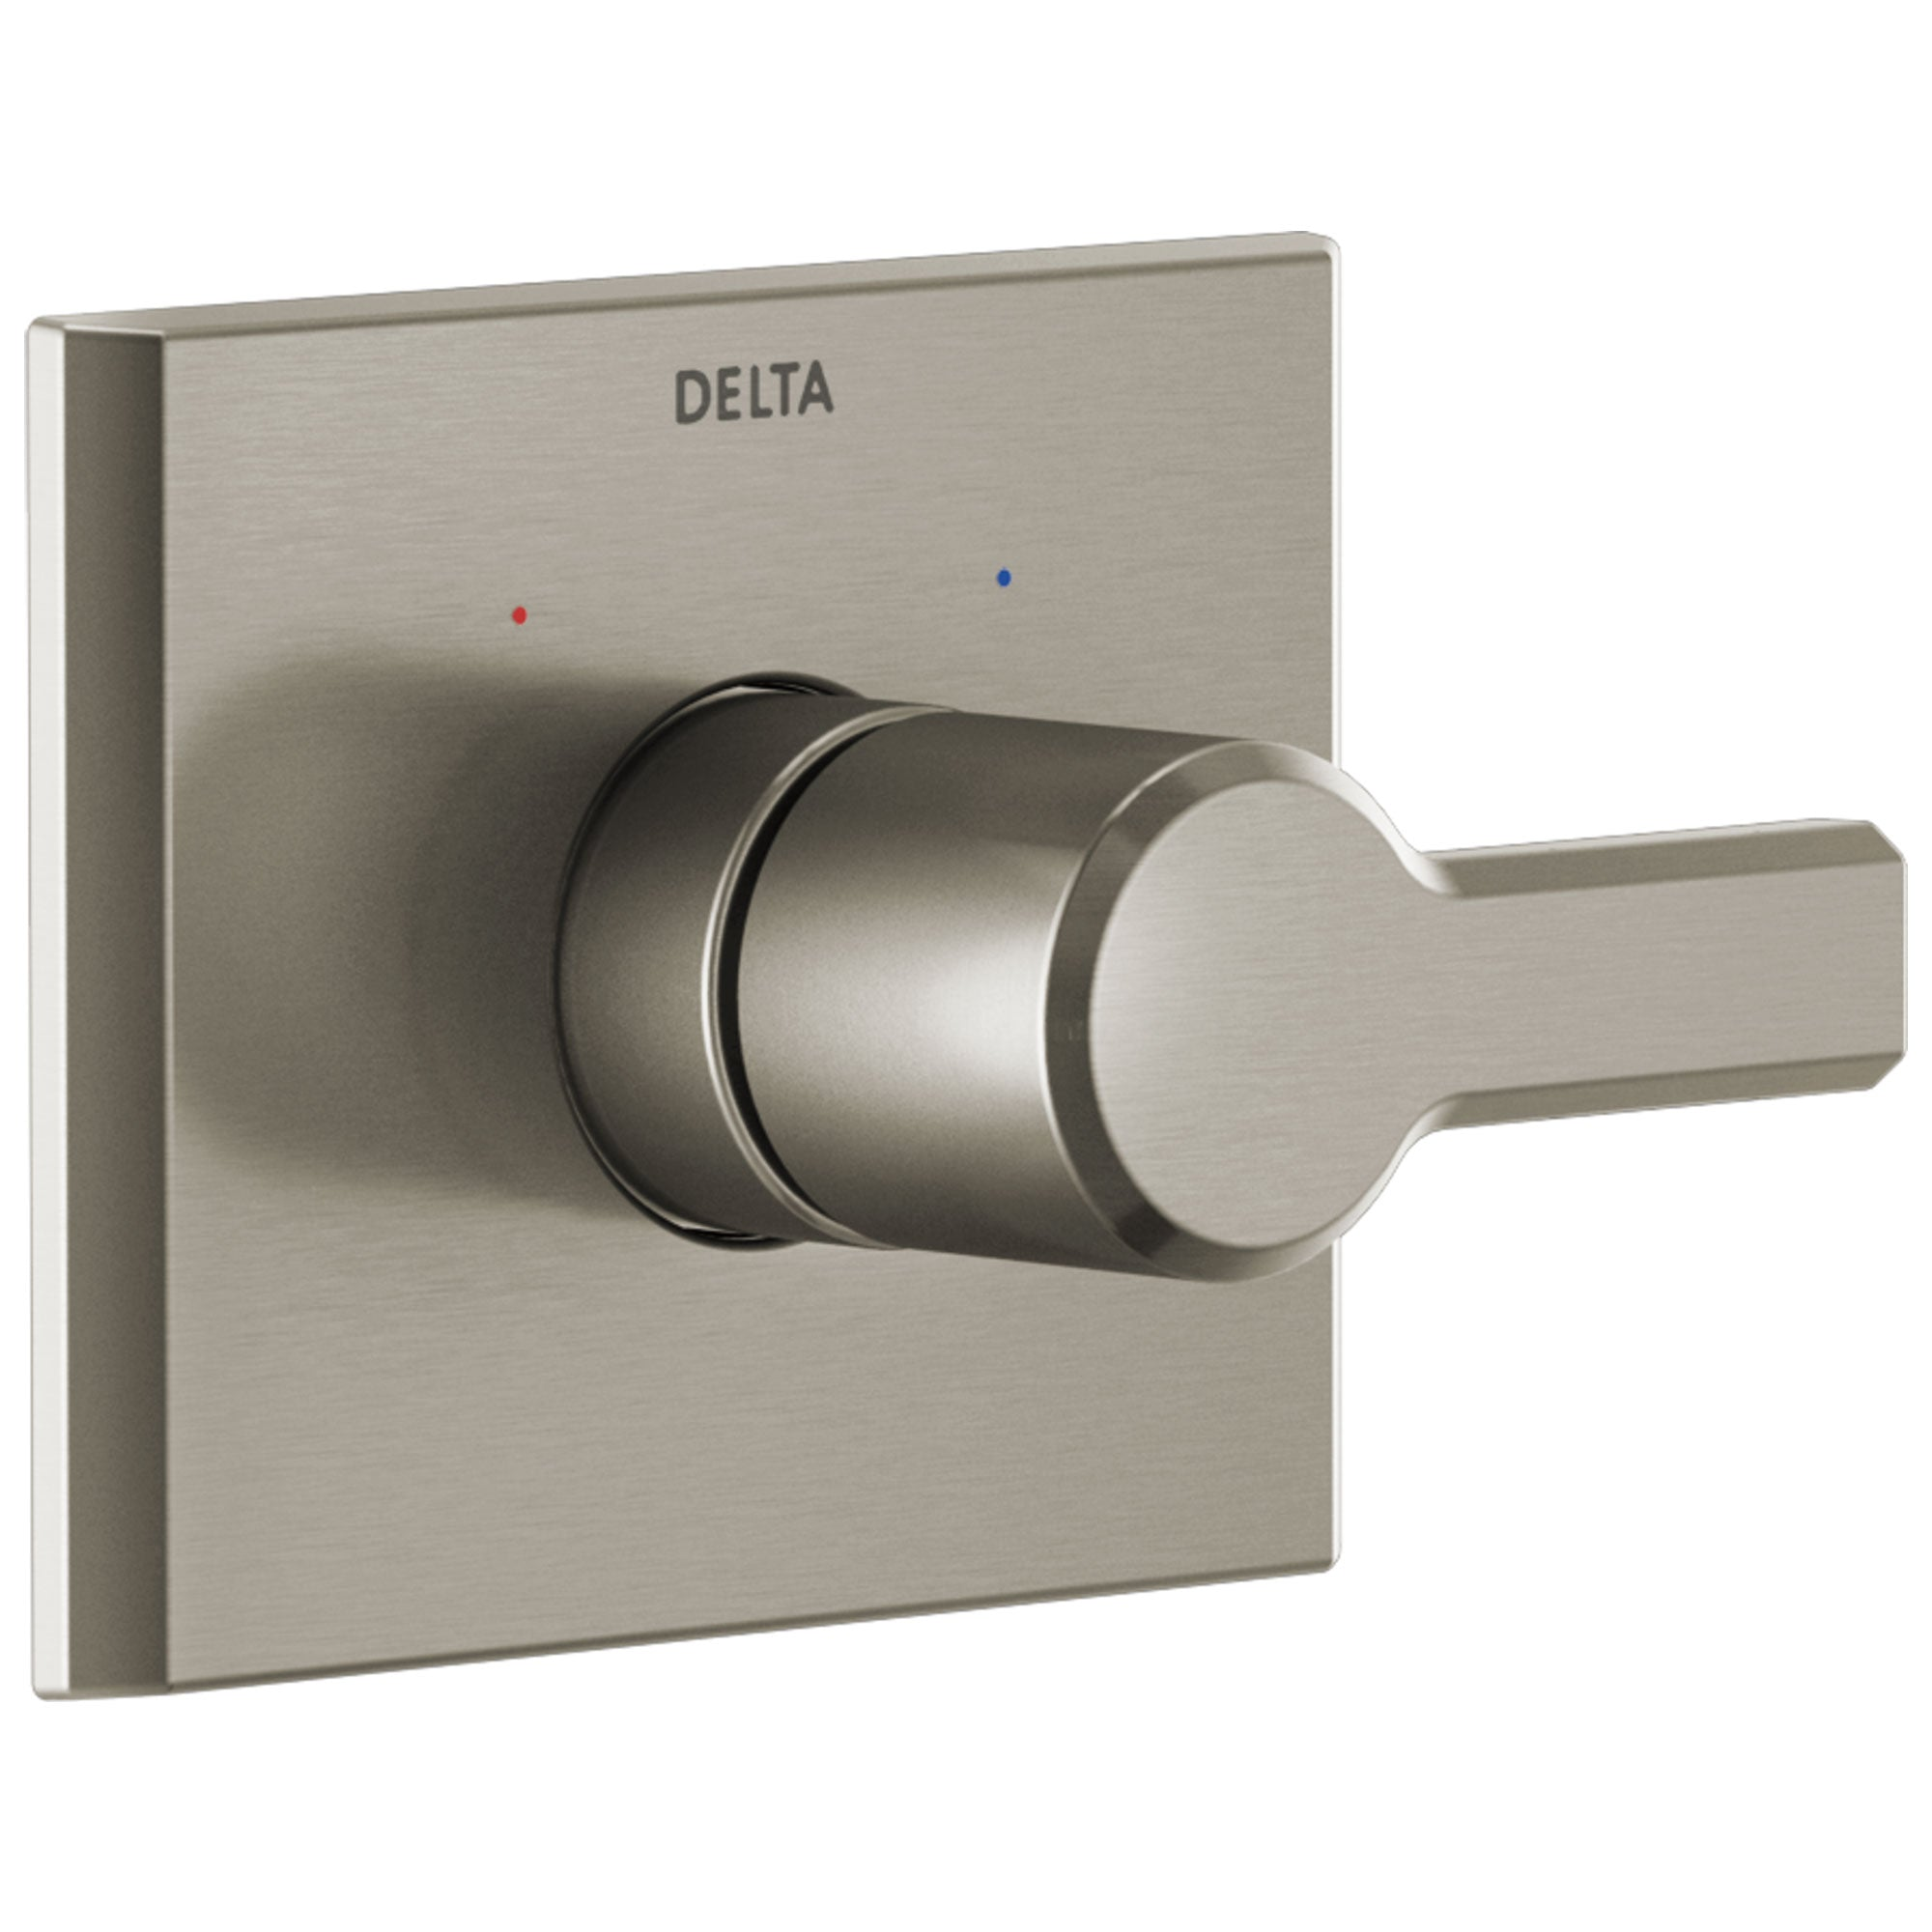 Delta Pivotal Stainless Steel Finish Monitor 14 Series Shower Faucet Control Only Trim Kit (Requires Valve) DT14099SS